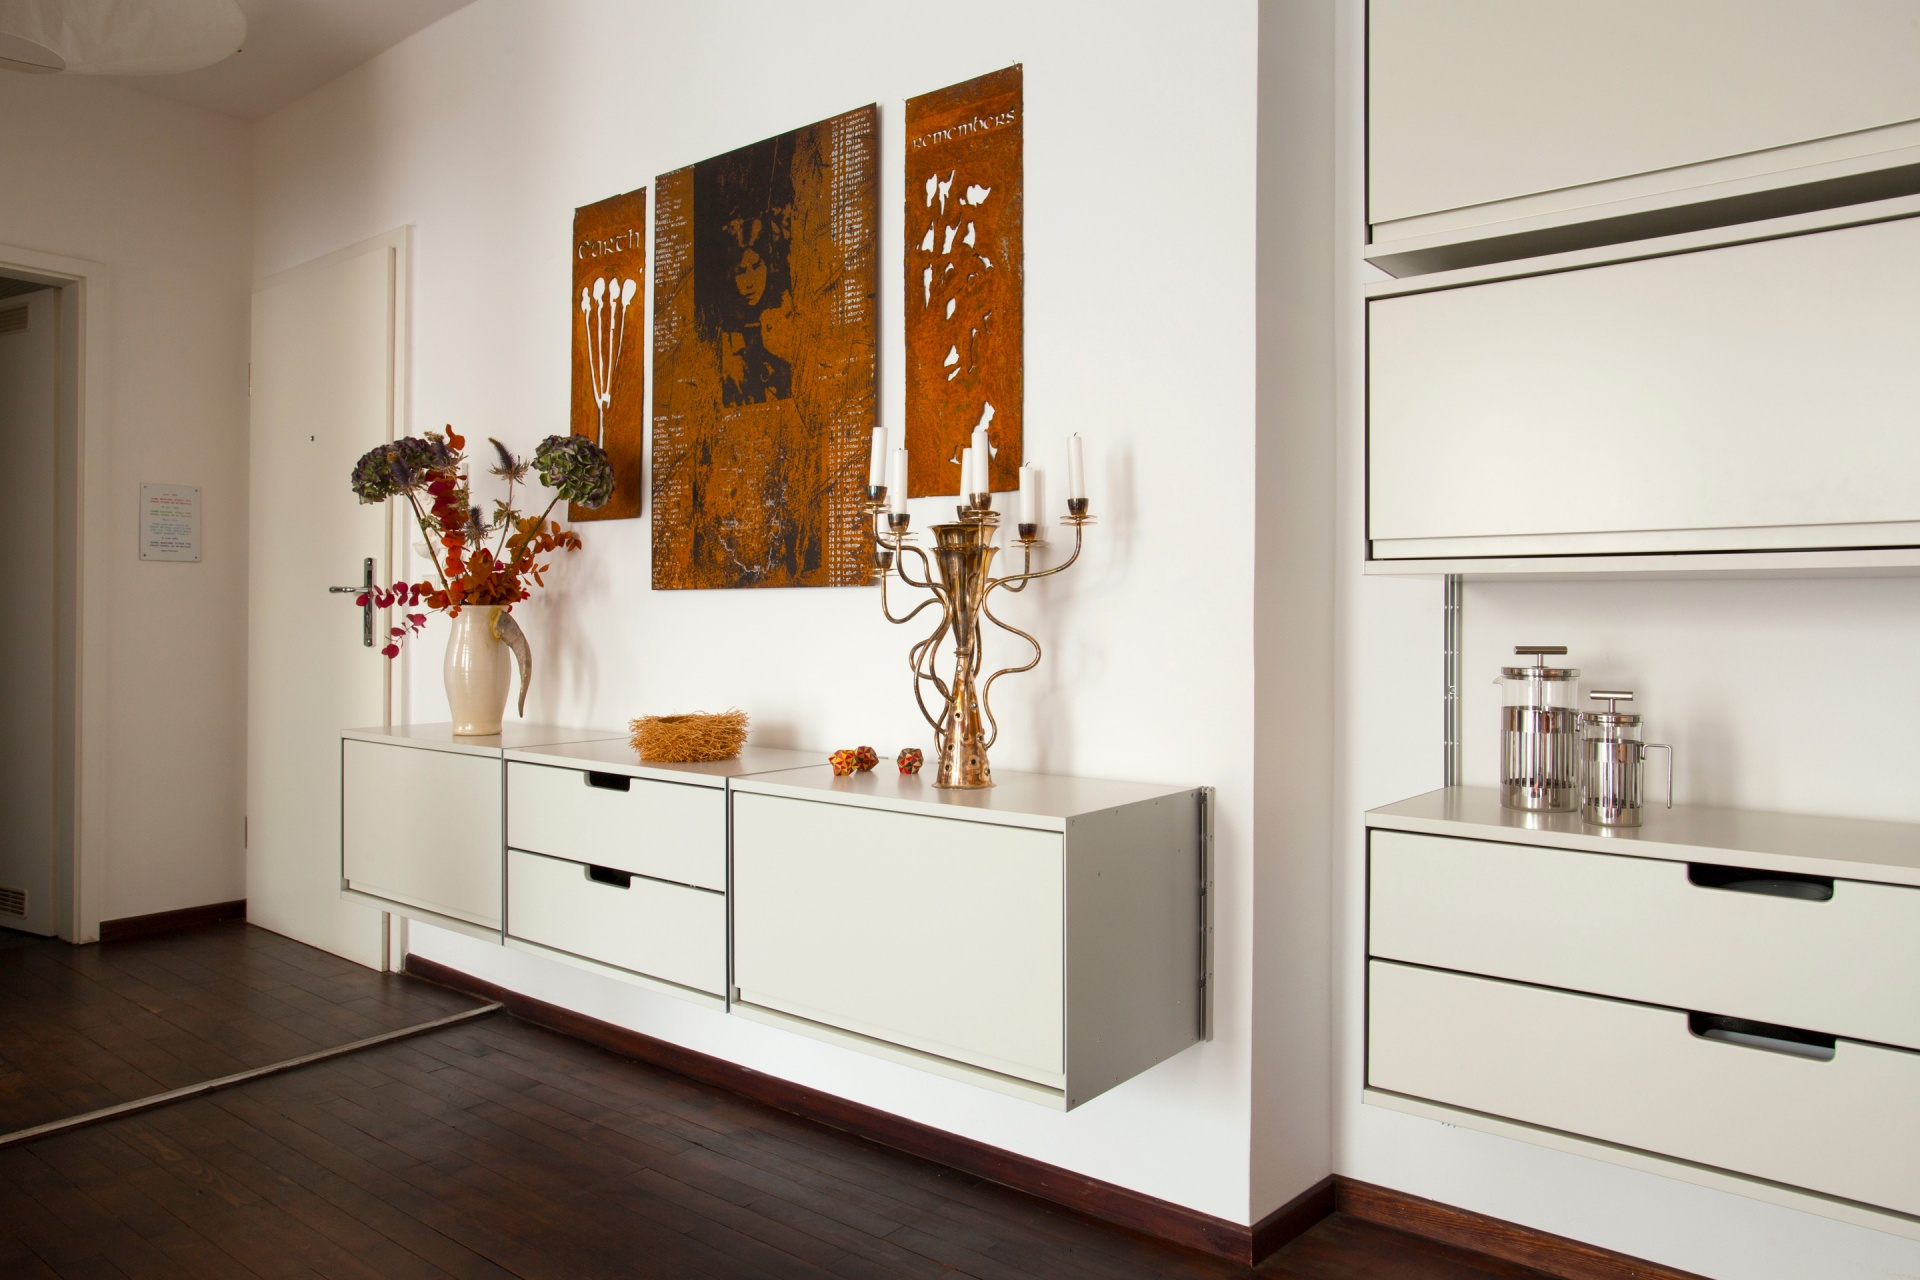 Six cabinets contain much storage so that art and objects come to the fore